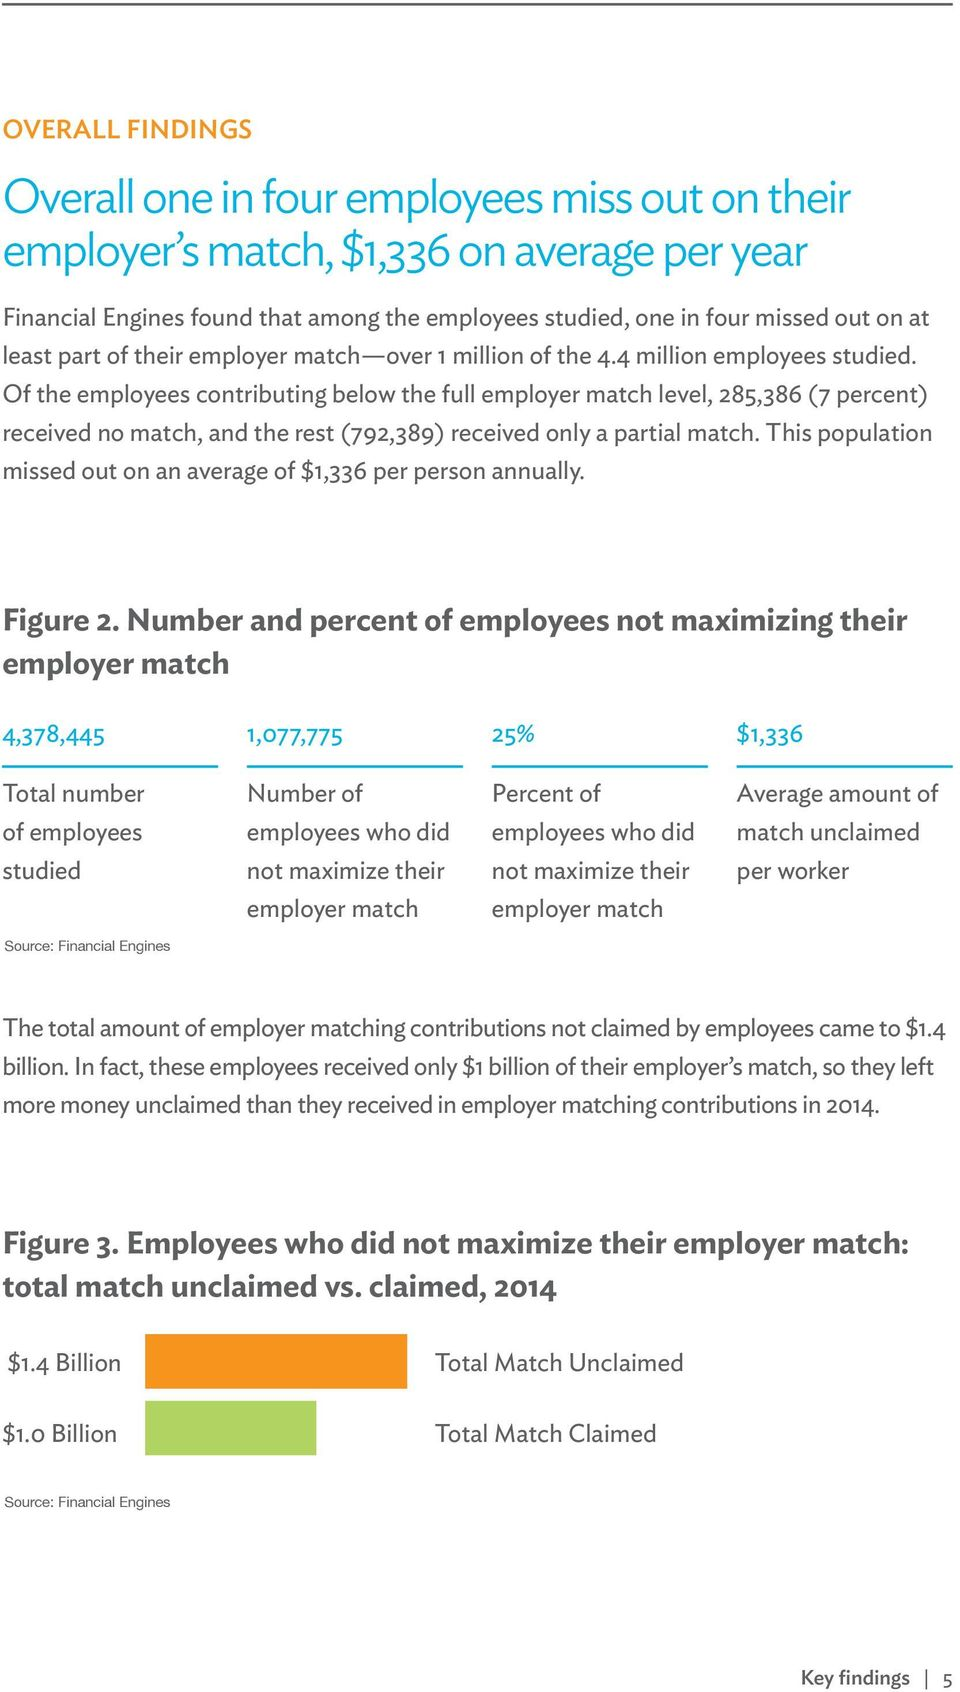 Of the employees contributing below the full employer match level, 285,386 (7 percent) received no match, and the rest (792,389) received only a partial match.